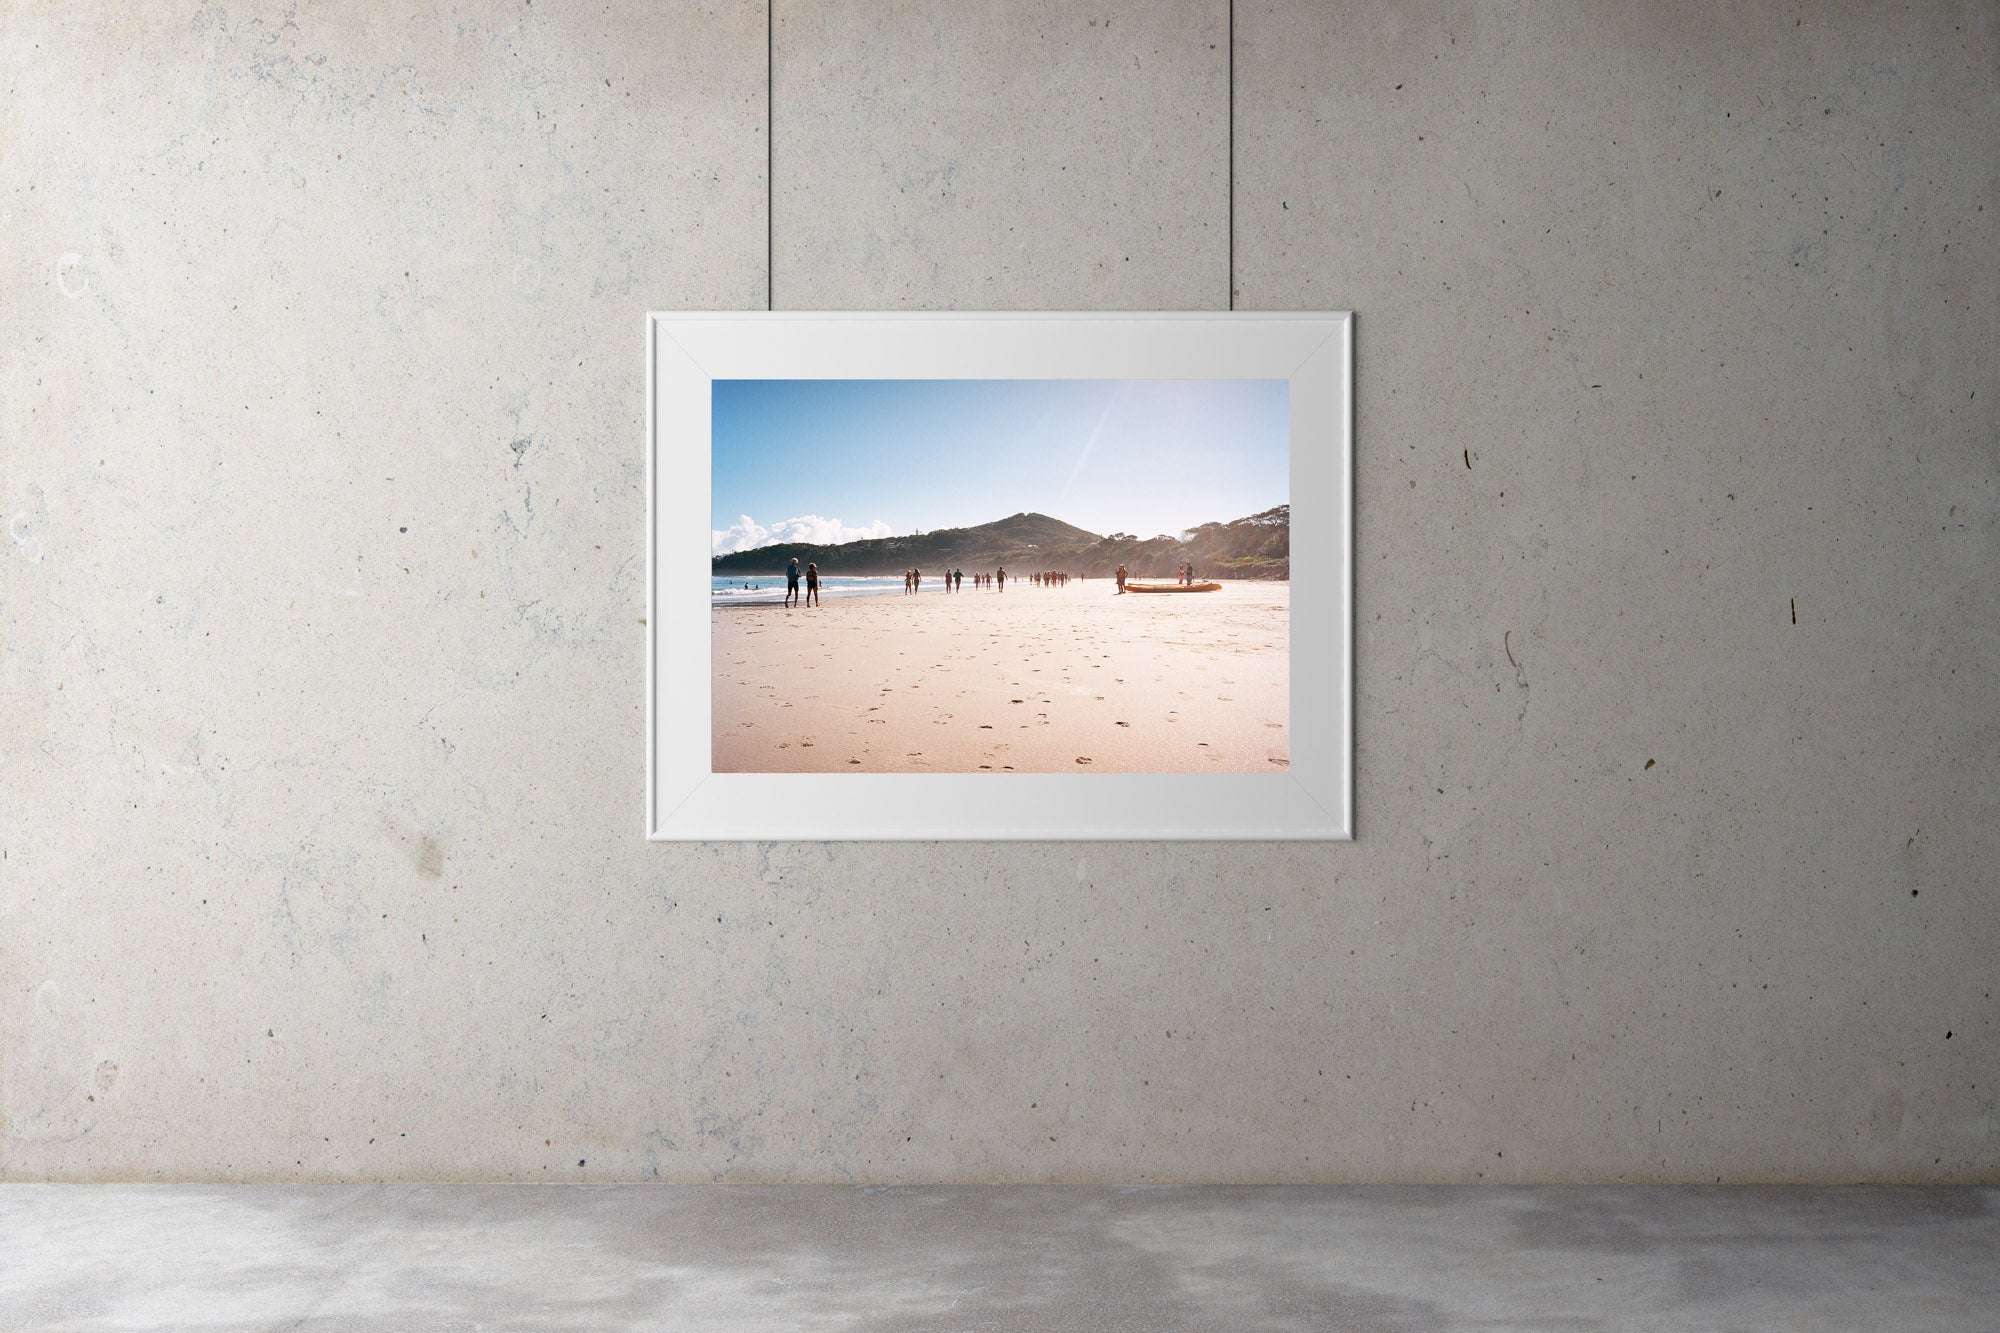 A room with a print on the wall, Byron bay beach with people walking in the distance, blue calm water, blue sky. Two men on a kayak head to the water, Artwork Prints, wall art, Melbourne travel,  Photographic prints,  Framed artwork,  Australian  Photography, wall art, beach prints, coastal prints, ocean prints,  Film photography, Vintage photo, style  Interior design, Pictures Abstract film photography, photography art, Australia, sun, beach, Byron bay,